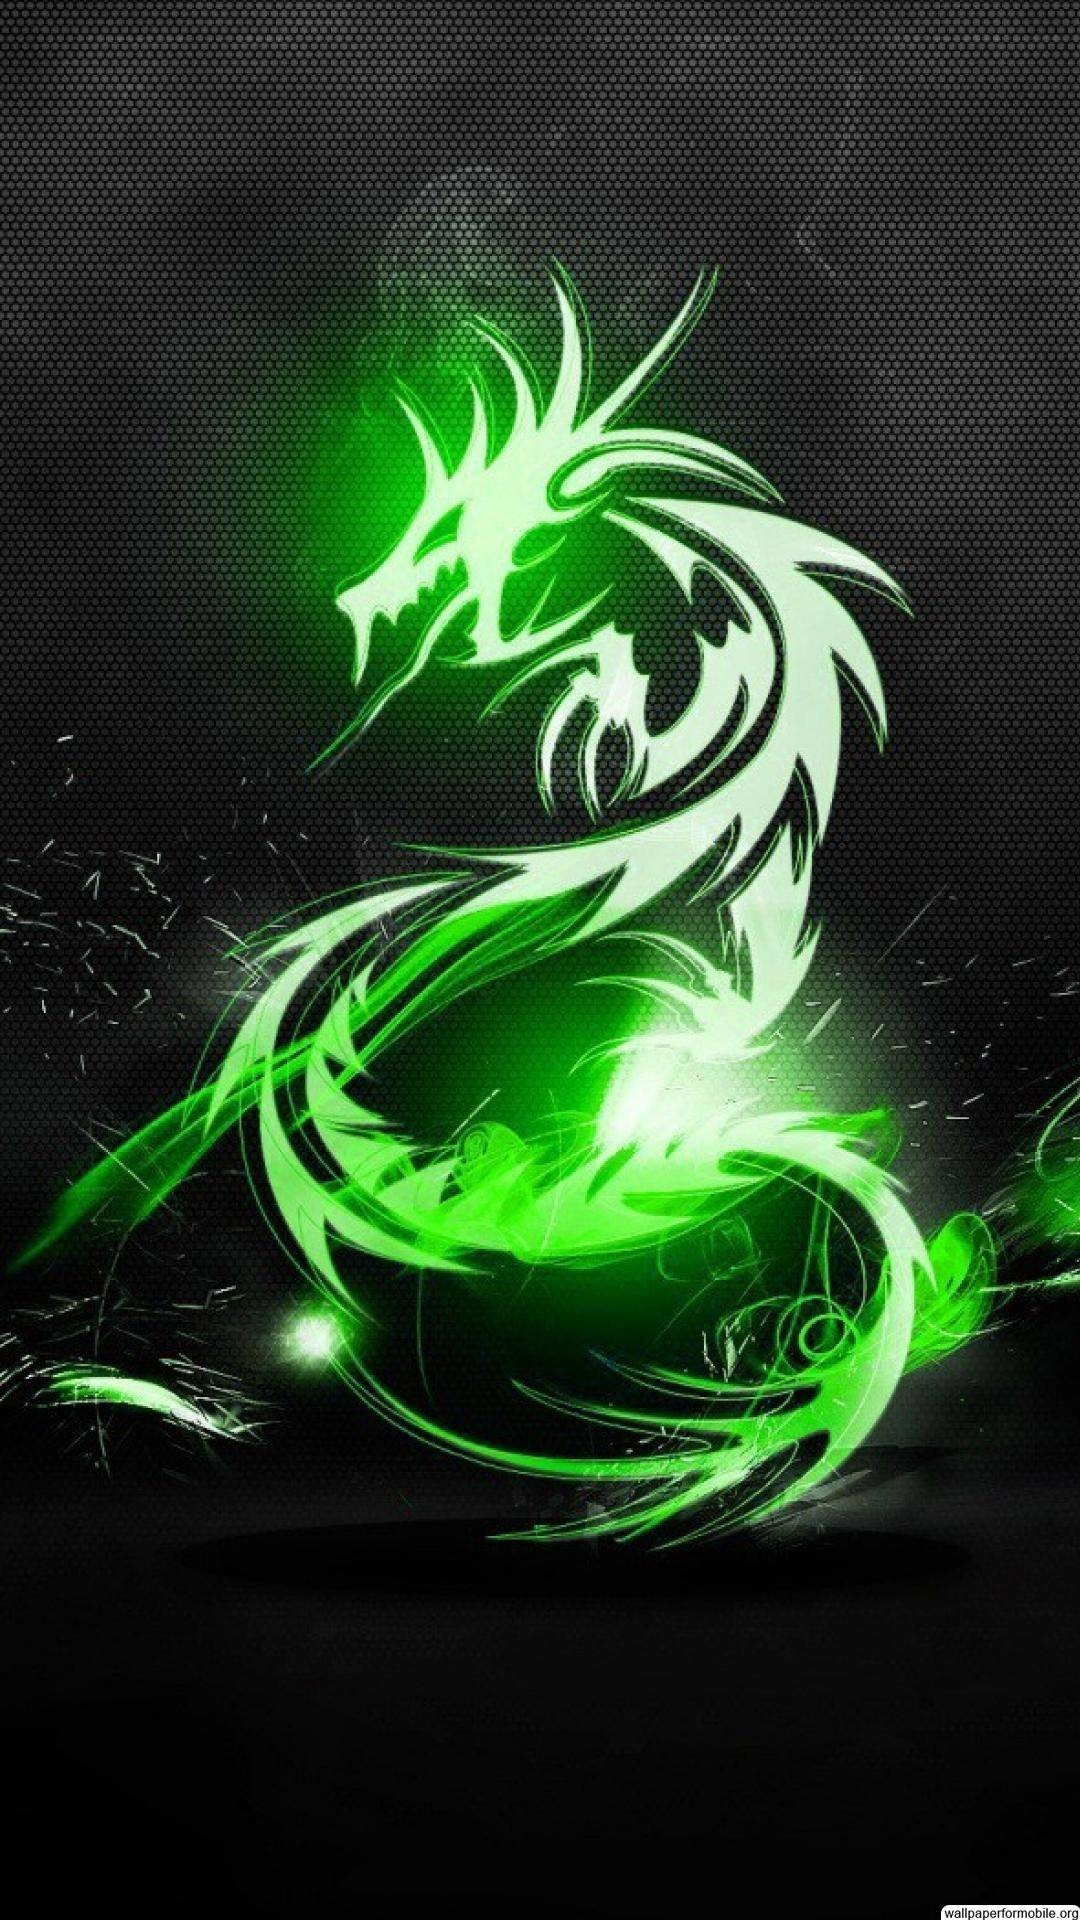 Cool Dragon Backgrounds HD Wallpapers Download Free Images Wallpaper [1000image.com]